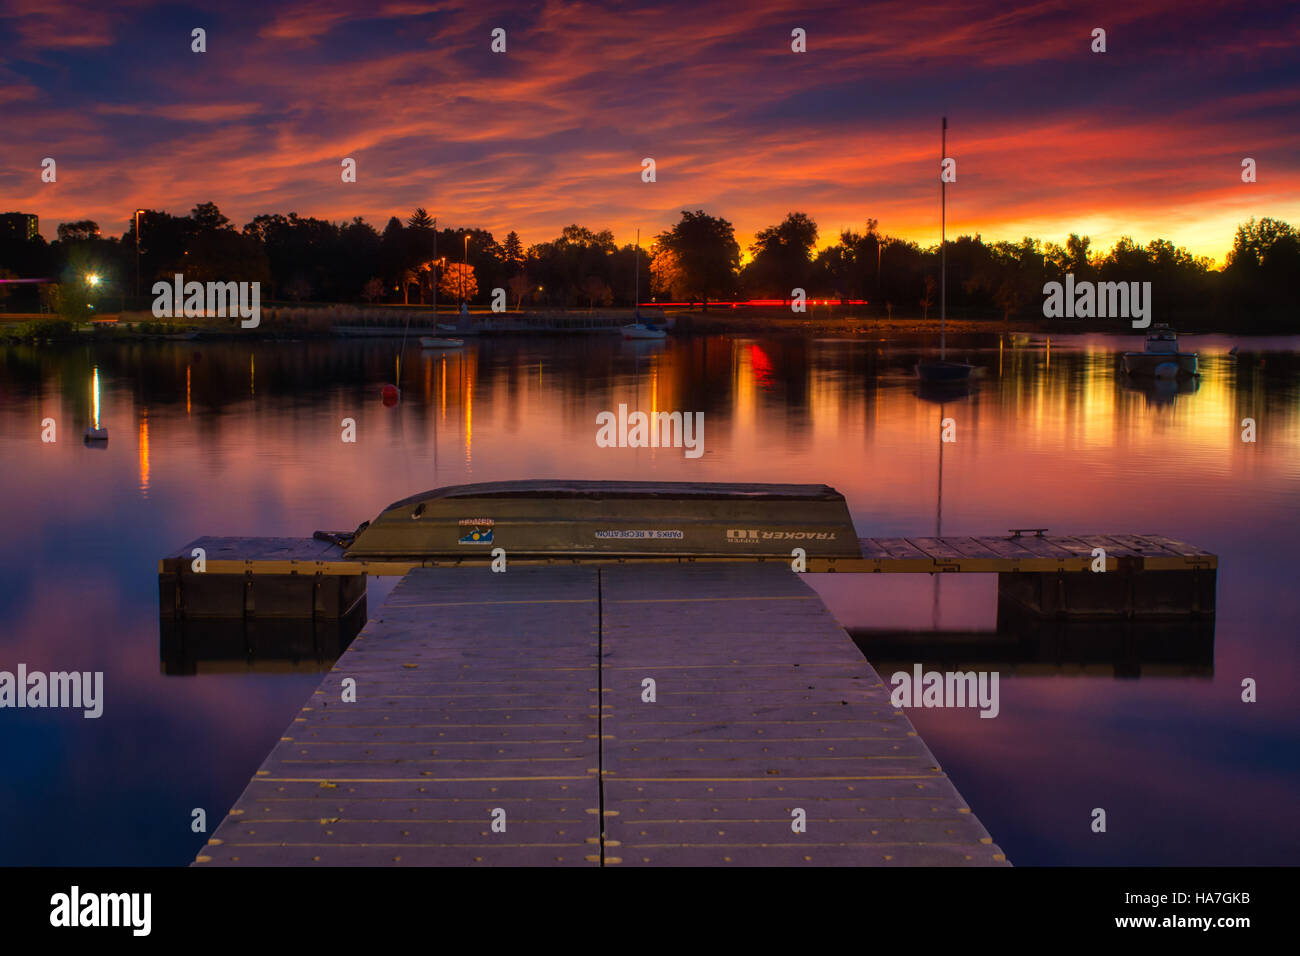 The boat pier at Sloan's Lake in Denver, Colorado awaits visitors as the sunrise paints the sky with incredible Stock Photo